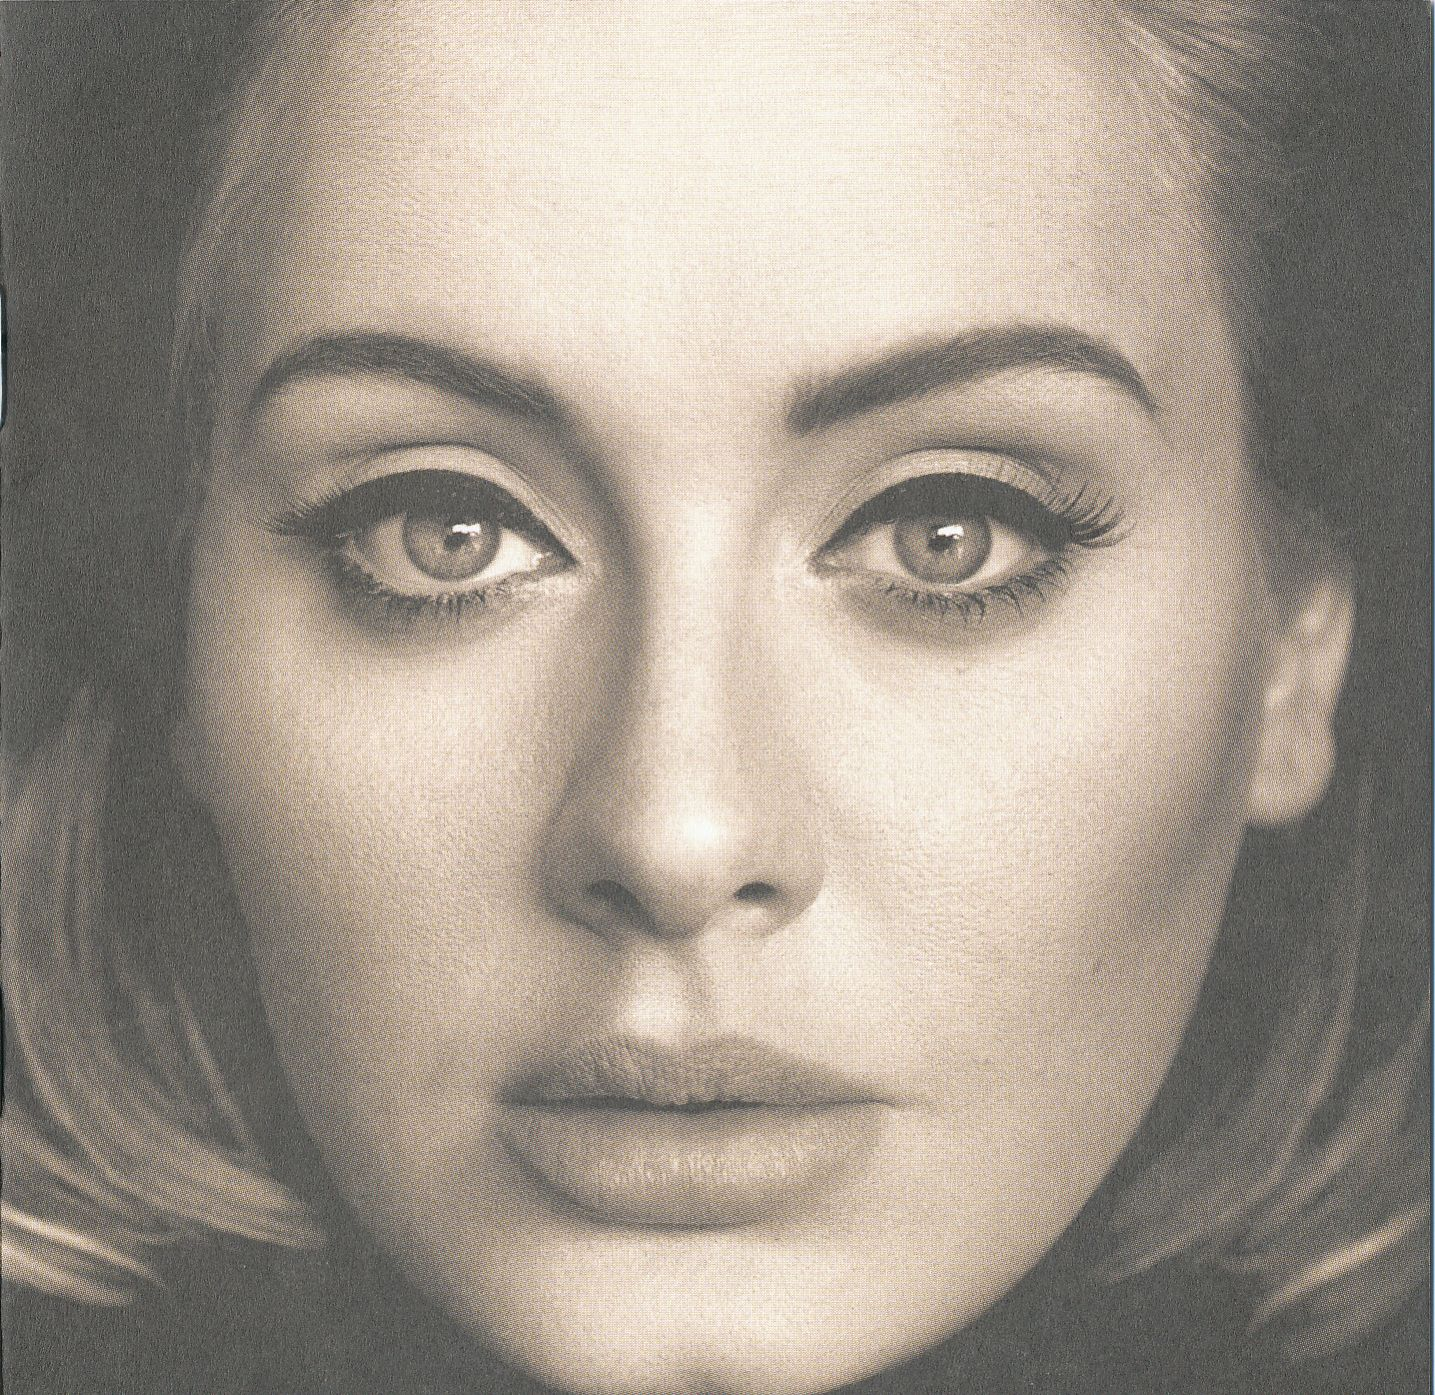 Adele - 25 album cover